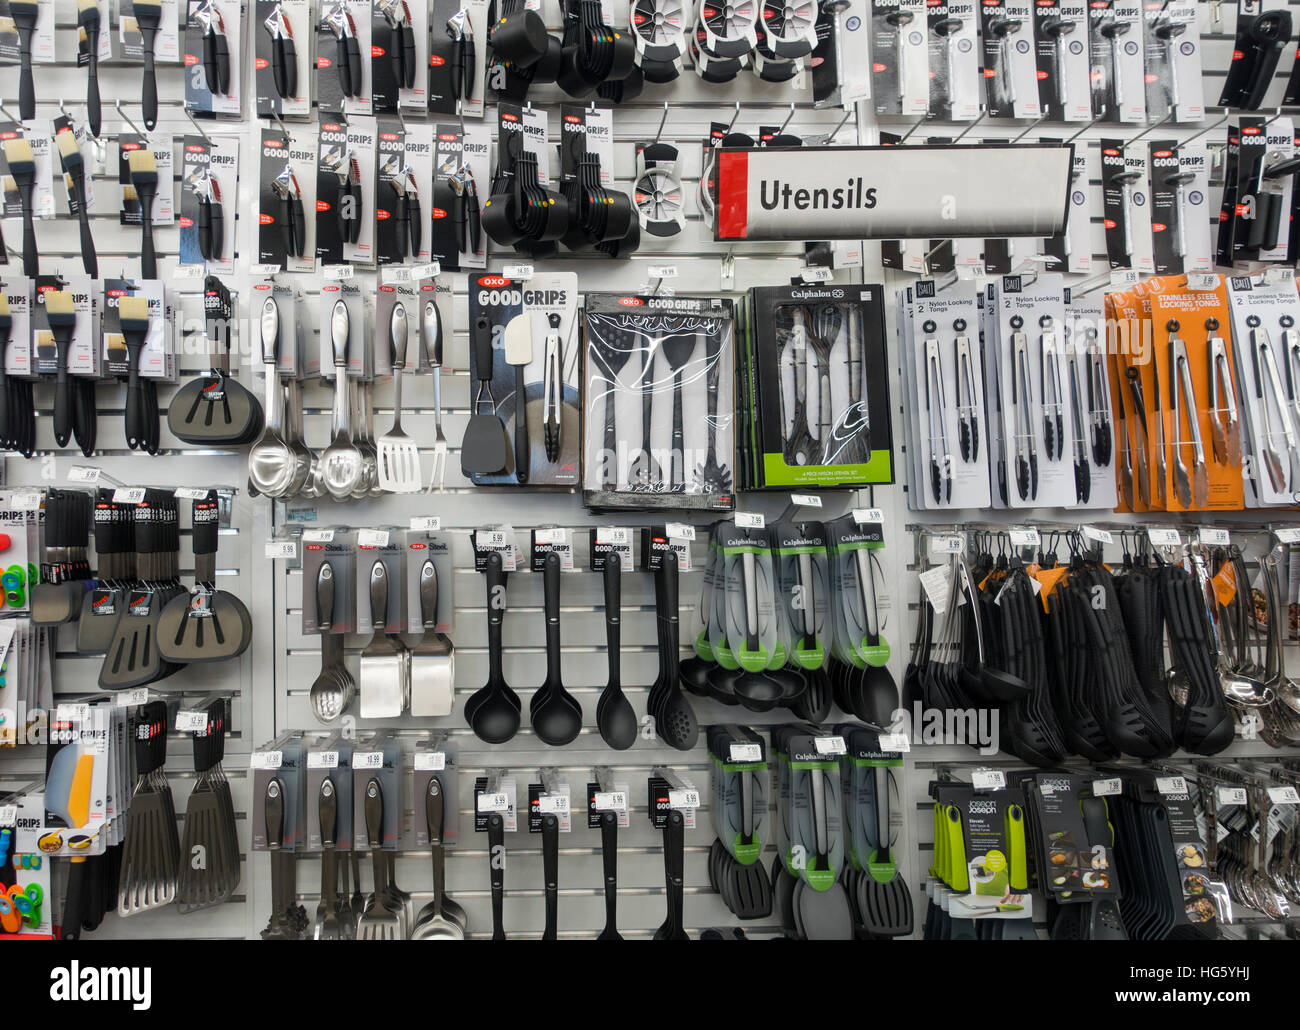 oxo kitchen utensils outdoor houston target store stock photo 130438494 alamy